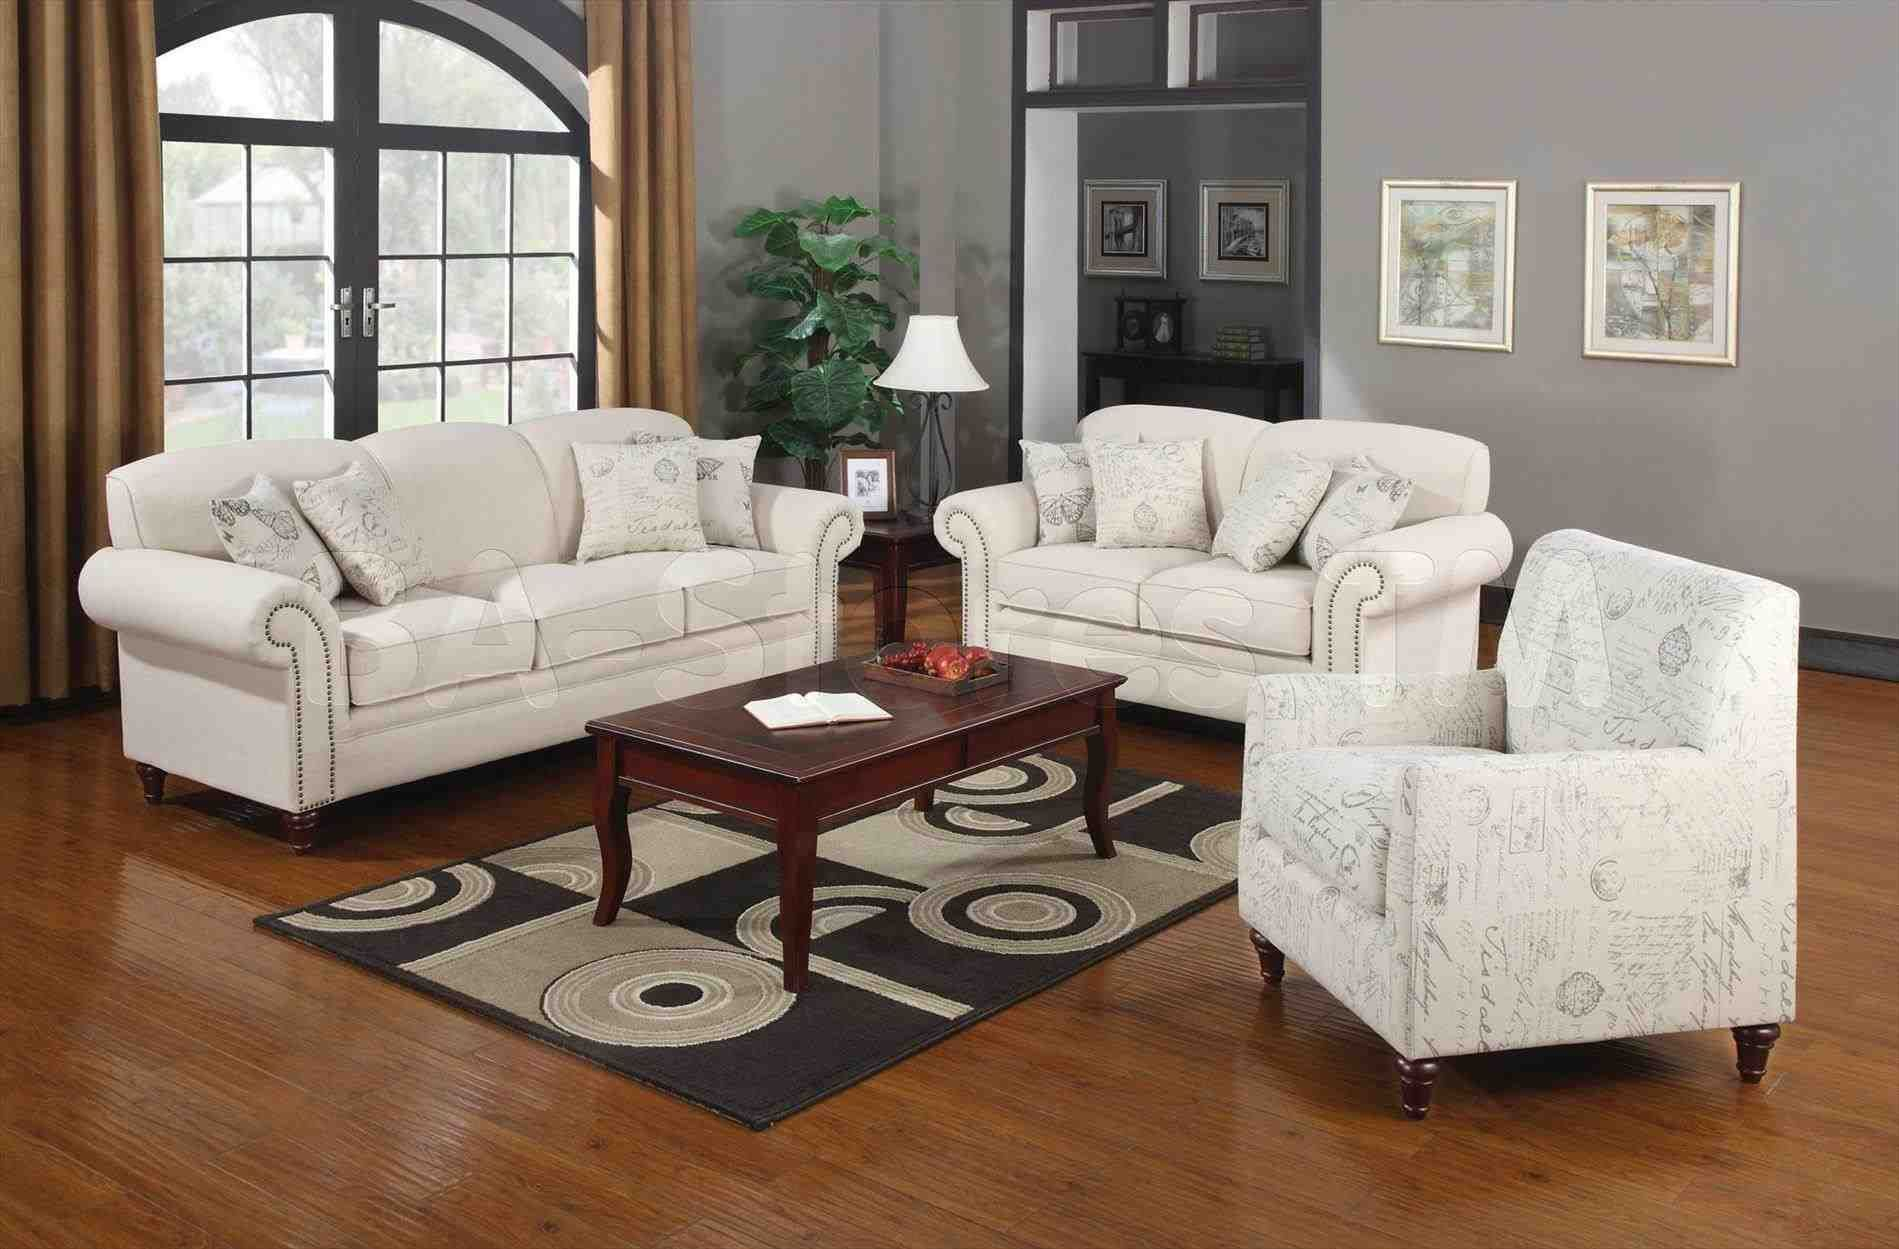 Cheap Living Room Furniture Sets For Sale Living Room Sofa throughout Cheap Living Room Sets Online